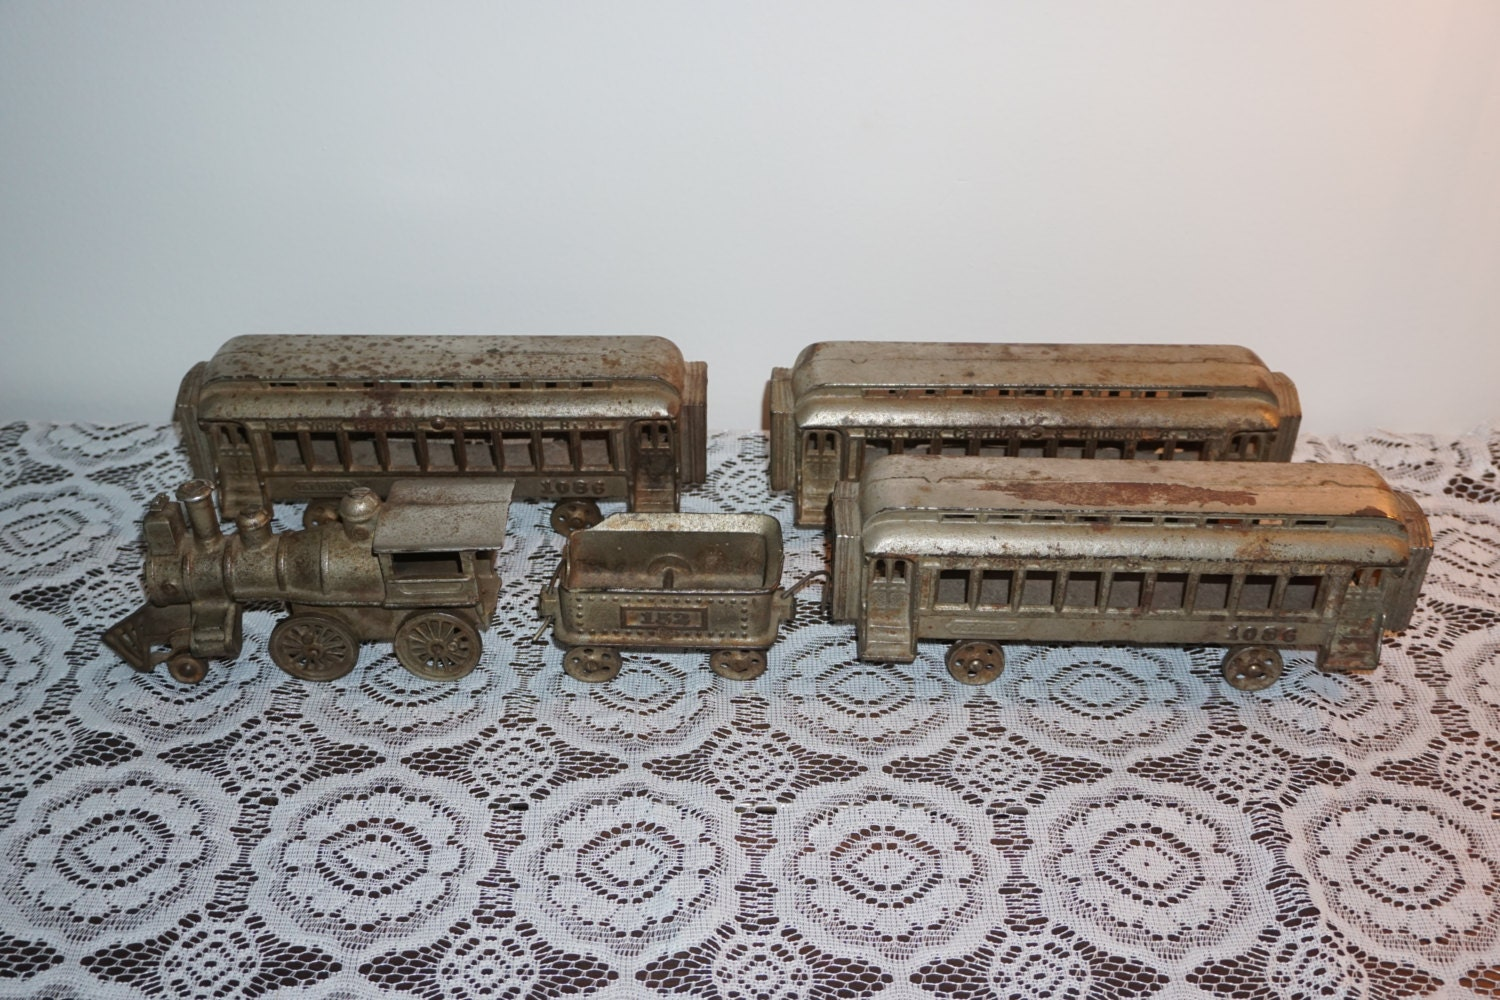 Nycrr Cast Iron Train: Early Buffalo Toys Or Ideal 5 Piece Cast Iron Train Set NYC